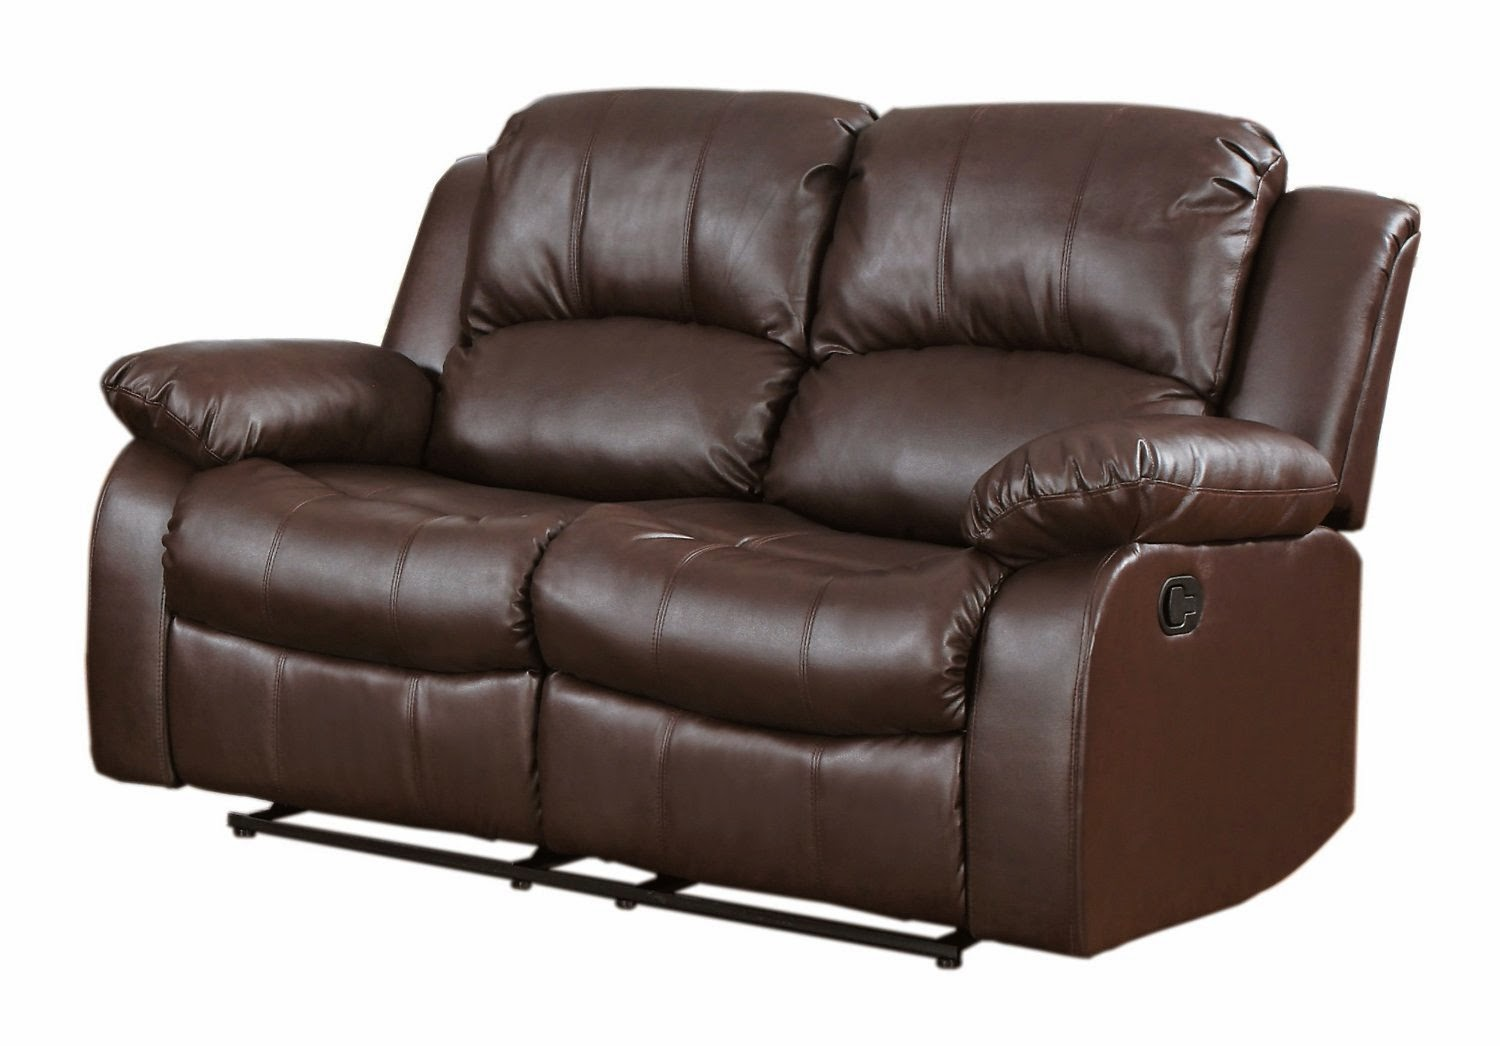 Where Is The Best Place To Buy Recliner Sofa: 2 Seater